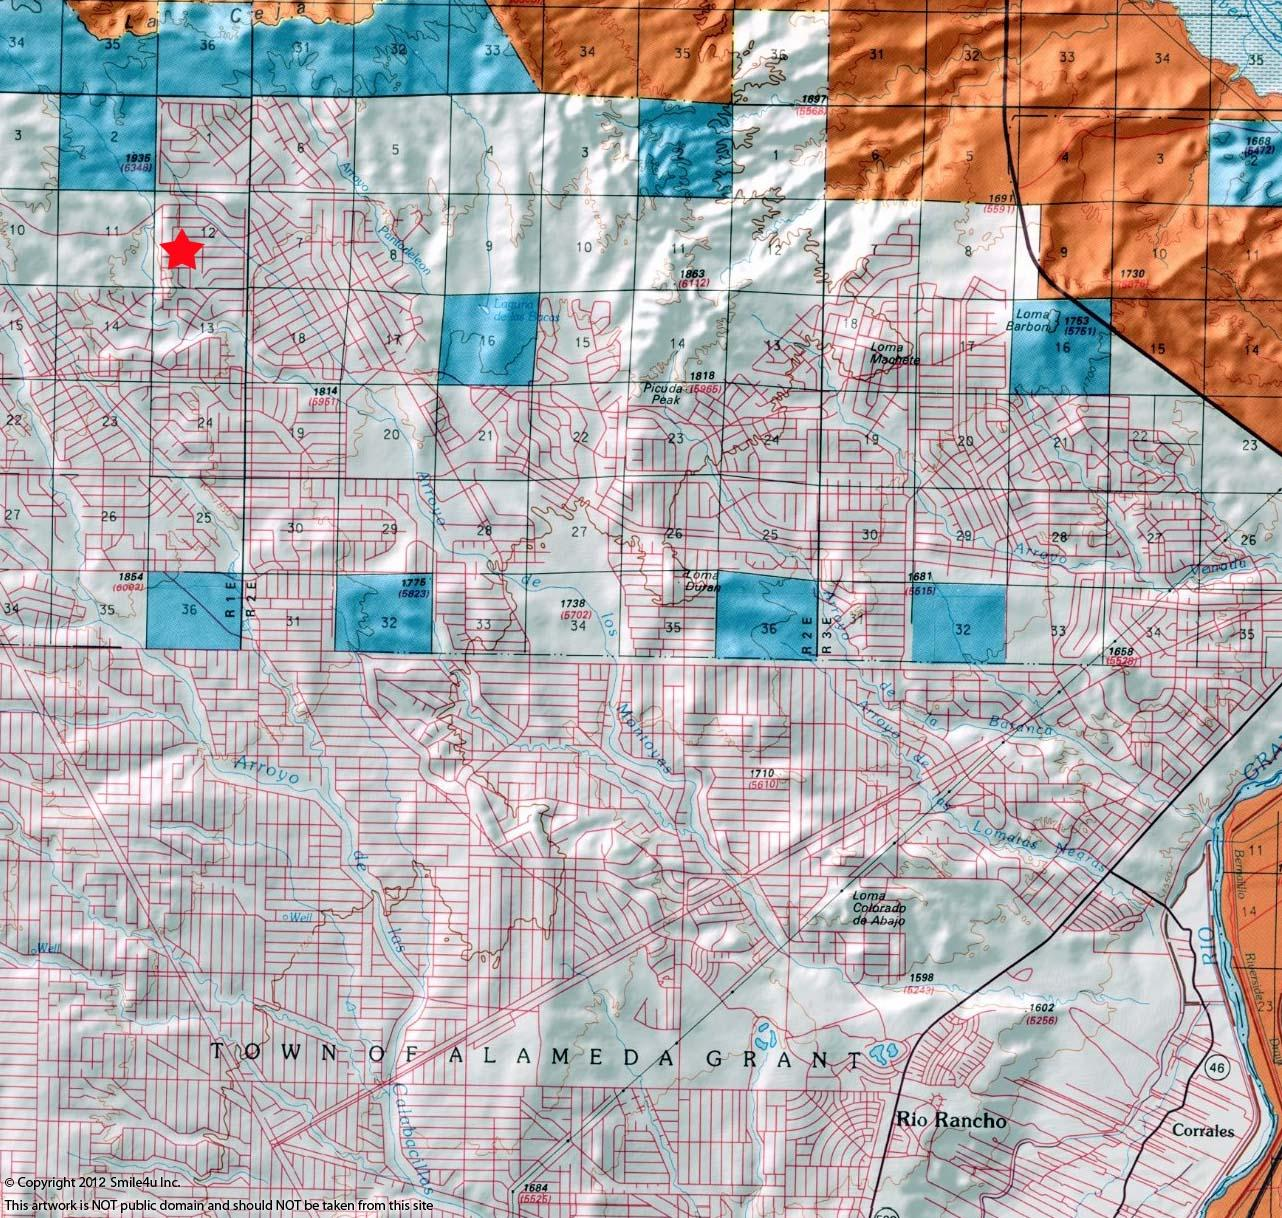 846328_watermarked_Rio Rancho BLM Map.jpg